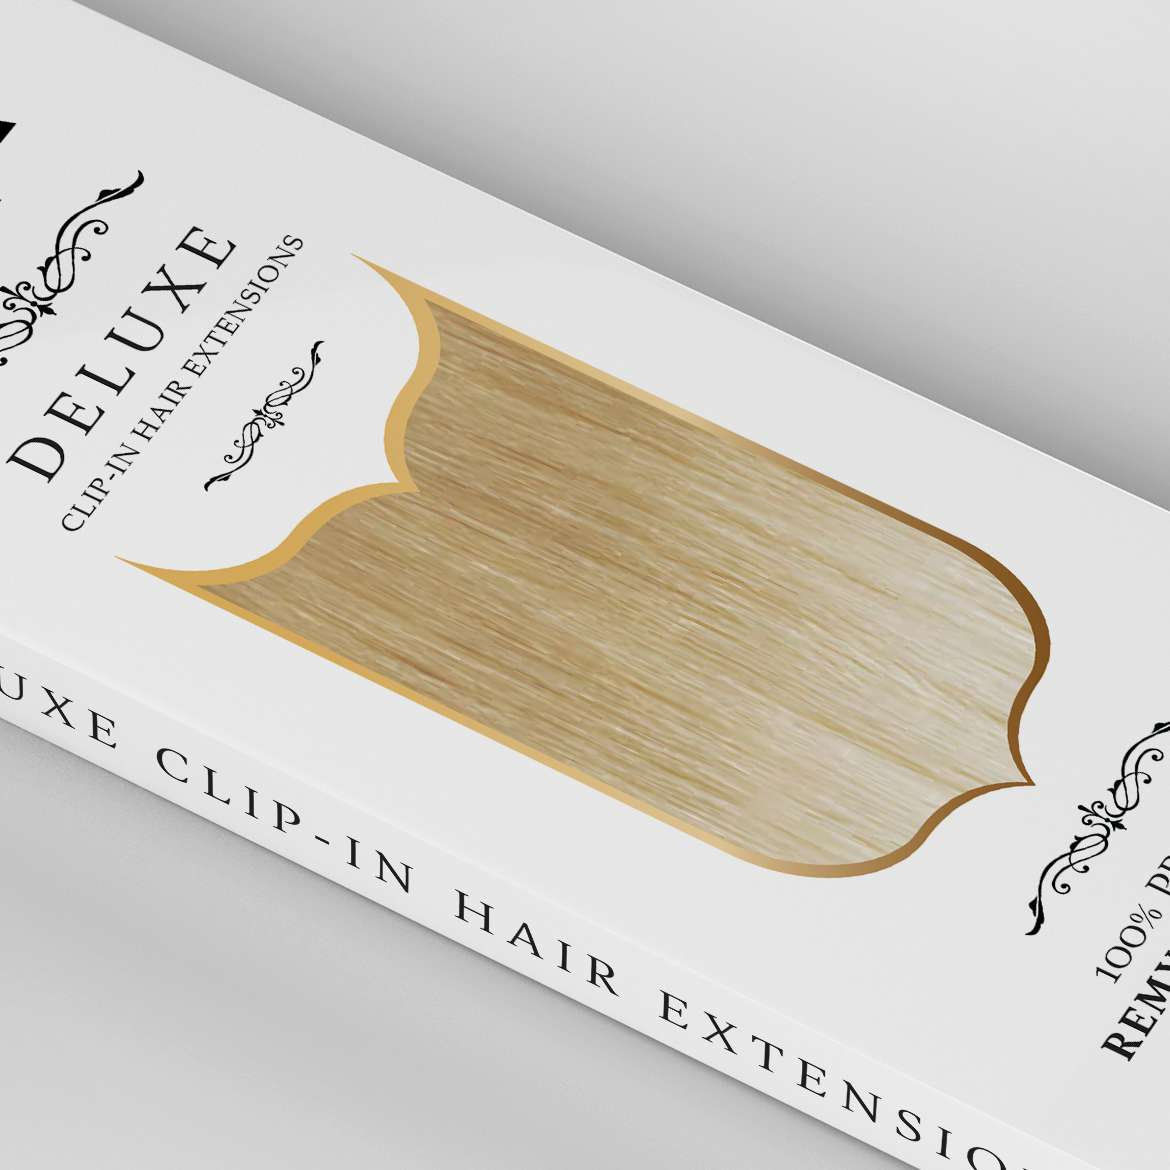 deluxe-clip-in-hair-extensions-packaging-design-remy-angled-close-up